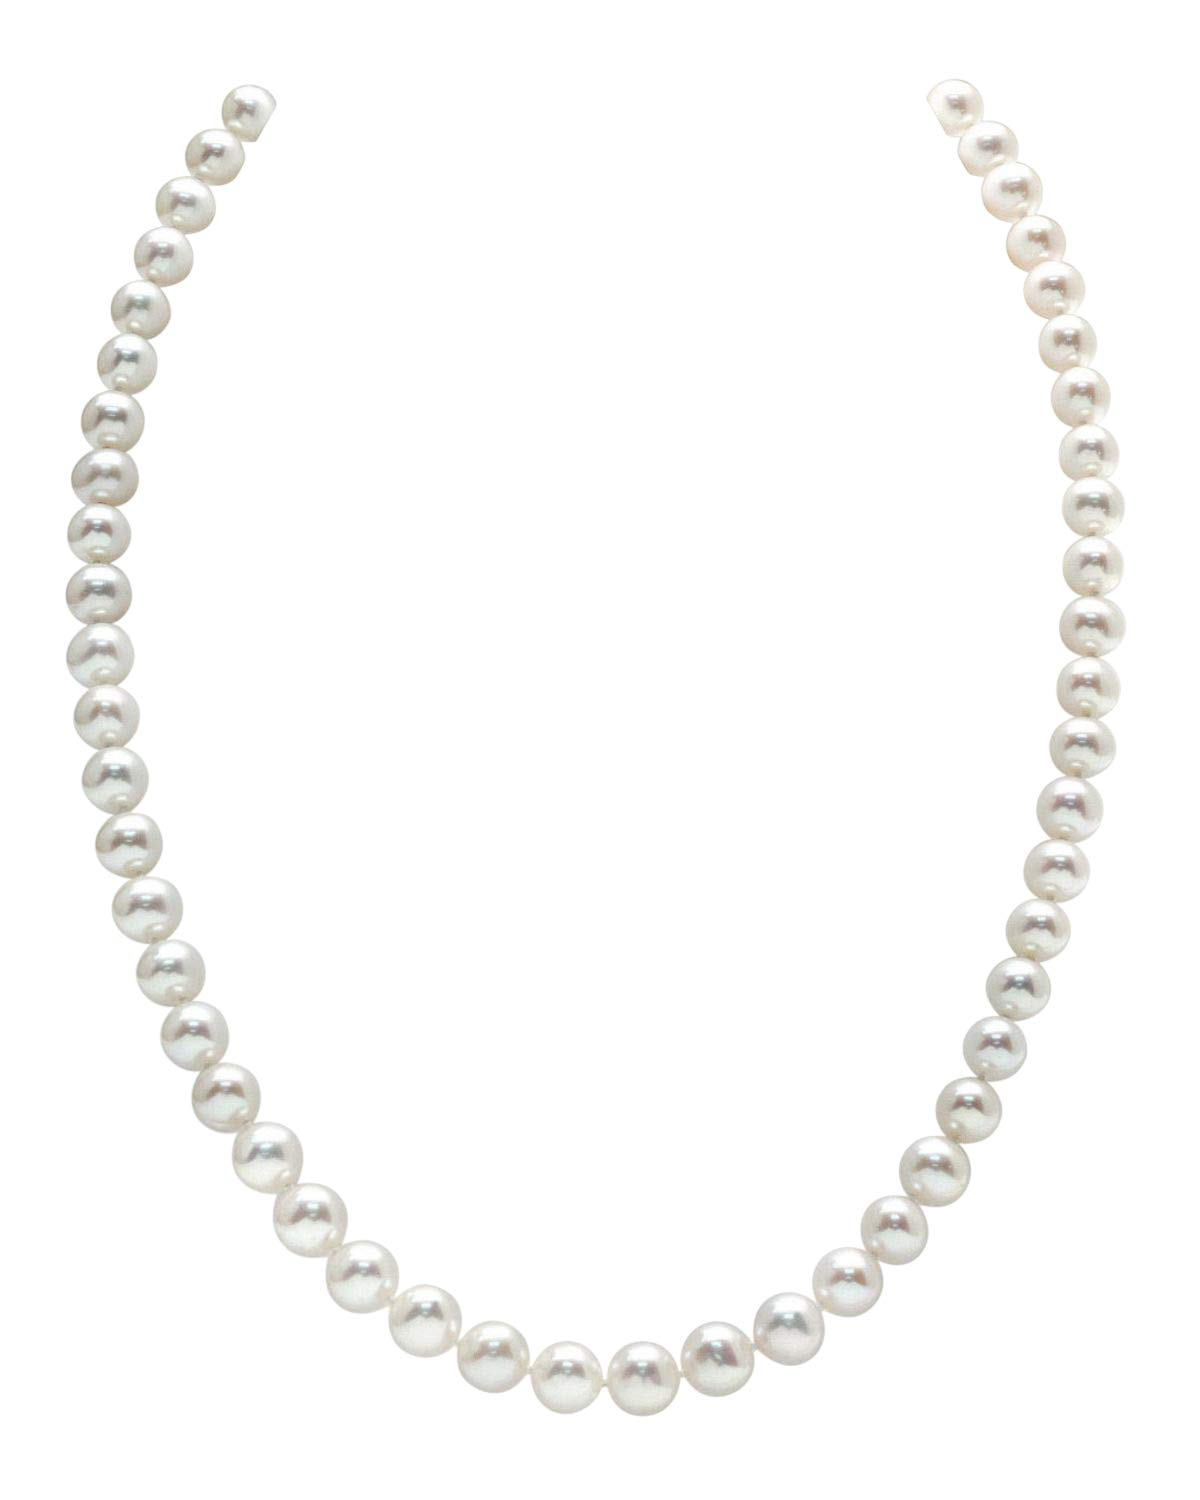 THE PEARL SOURCE 14K Gold 5.0-5.5mm AAAA Quality White Freshwater Cultured Pearl Necklace for Women in 17'' Princess Length by The Pearl Source